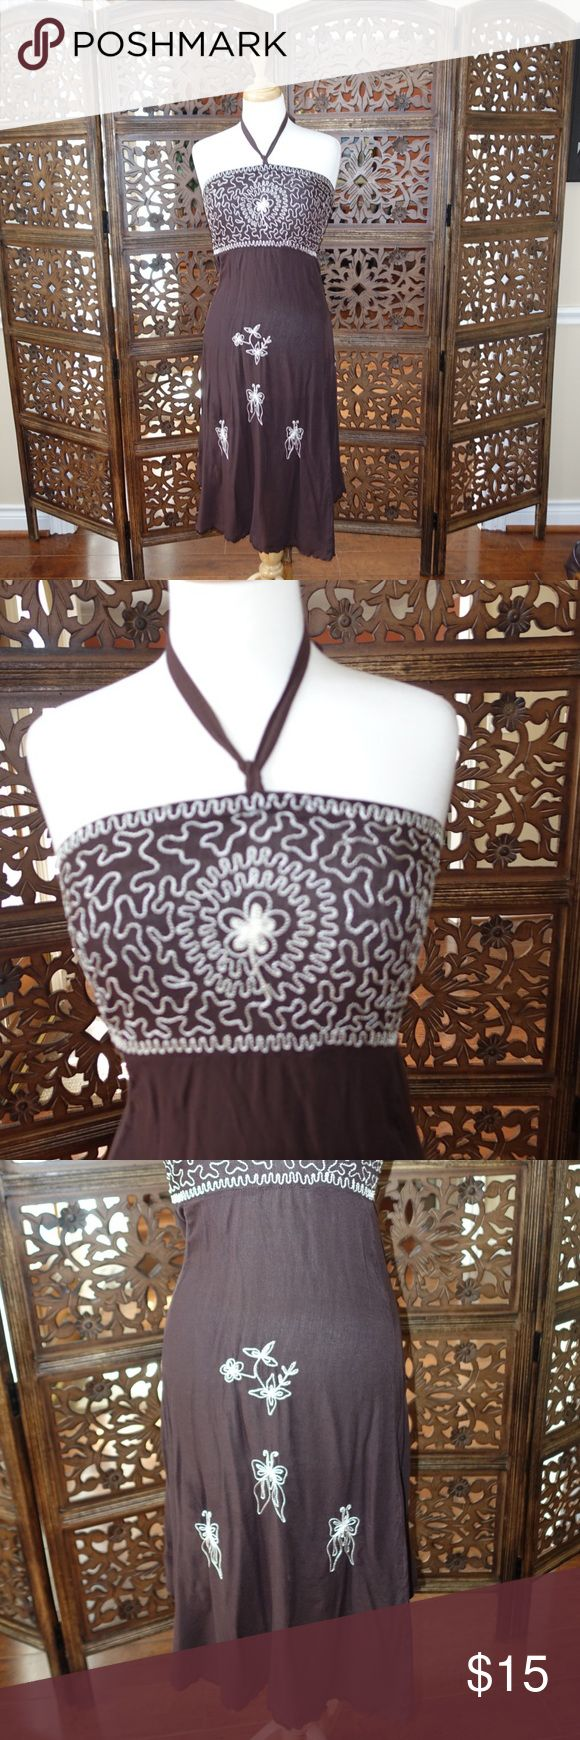 Beautiful brown beach dress 🌺 Beautiful brown dress with white embroided flowers and butterflies. It's one size so will fit a medium-large. You can wear at the beach, as a cover up or as a weekend comfy dress to go out shopping. Remember to bundle and save 10% on 2 or more items. 😊 Bluemar Dresses Midi